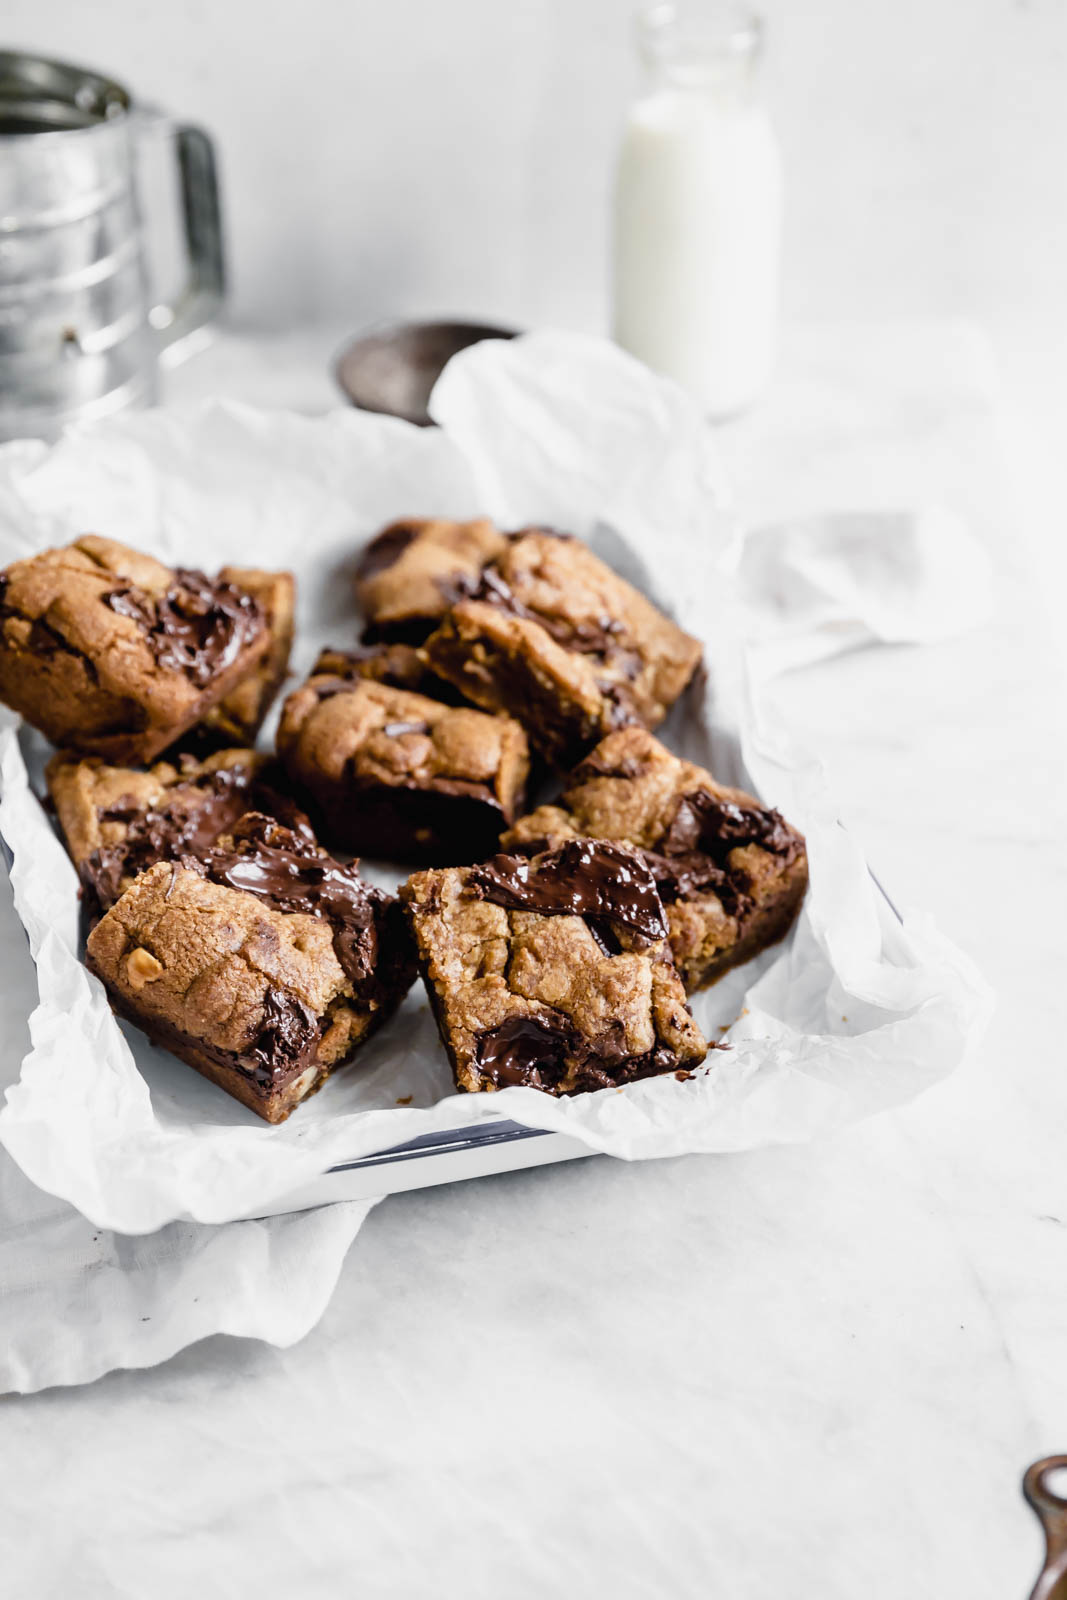 Brown Butter Nutella Chocolate Chip Cookie Bars with fat swirls of Nutella and lightly toasted hazelnuts.